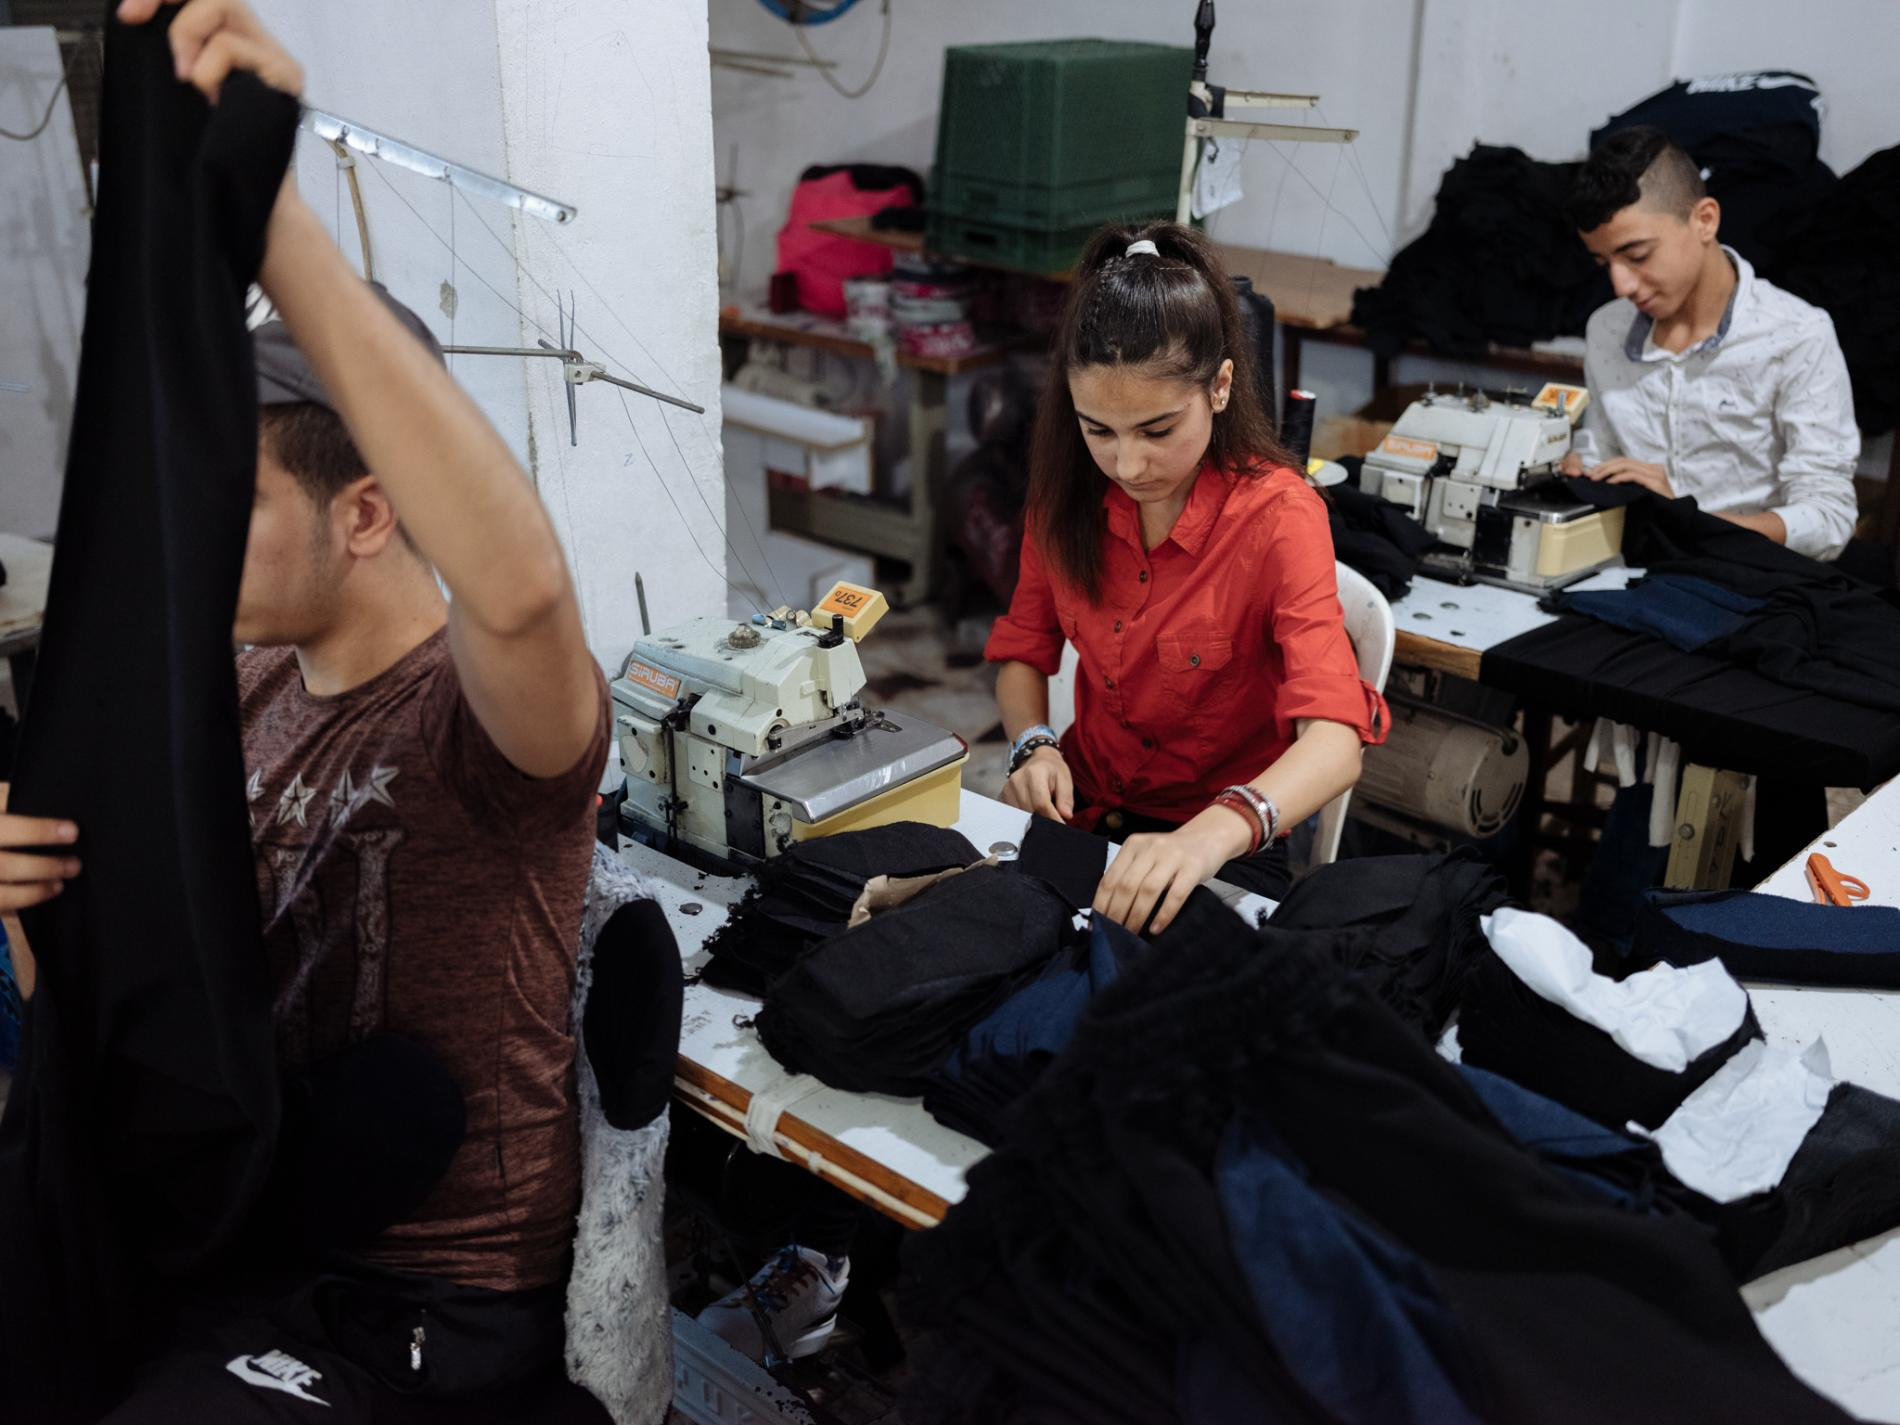 after fleeing syria, young refugees become the youngest laborers - National Geographic Magazine, June 20, 2019